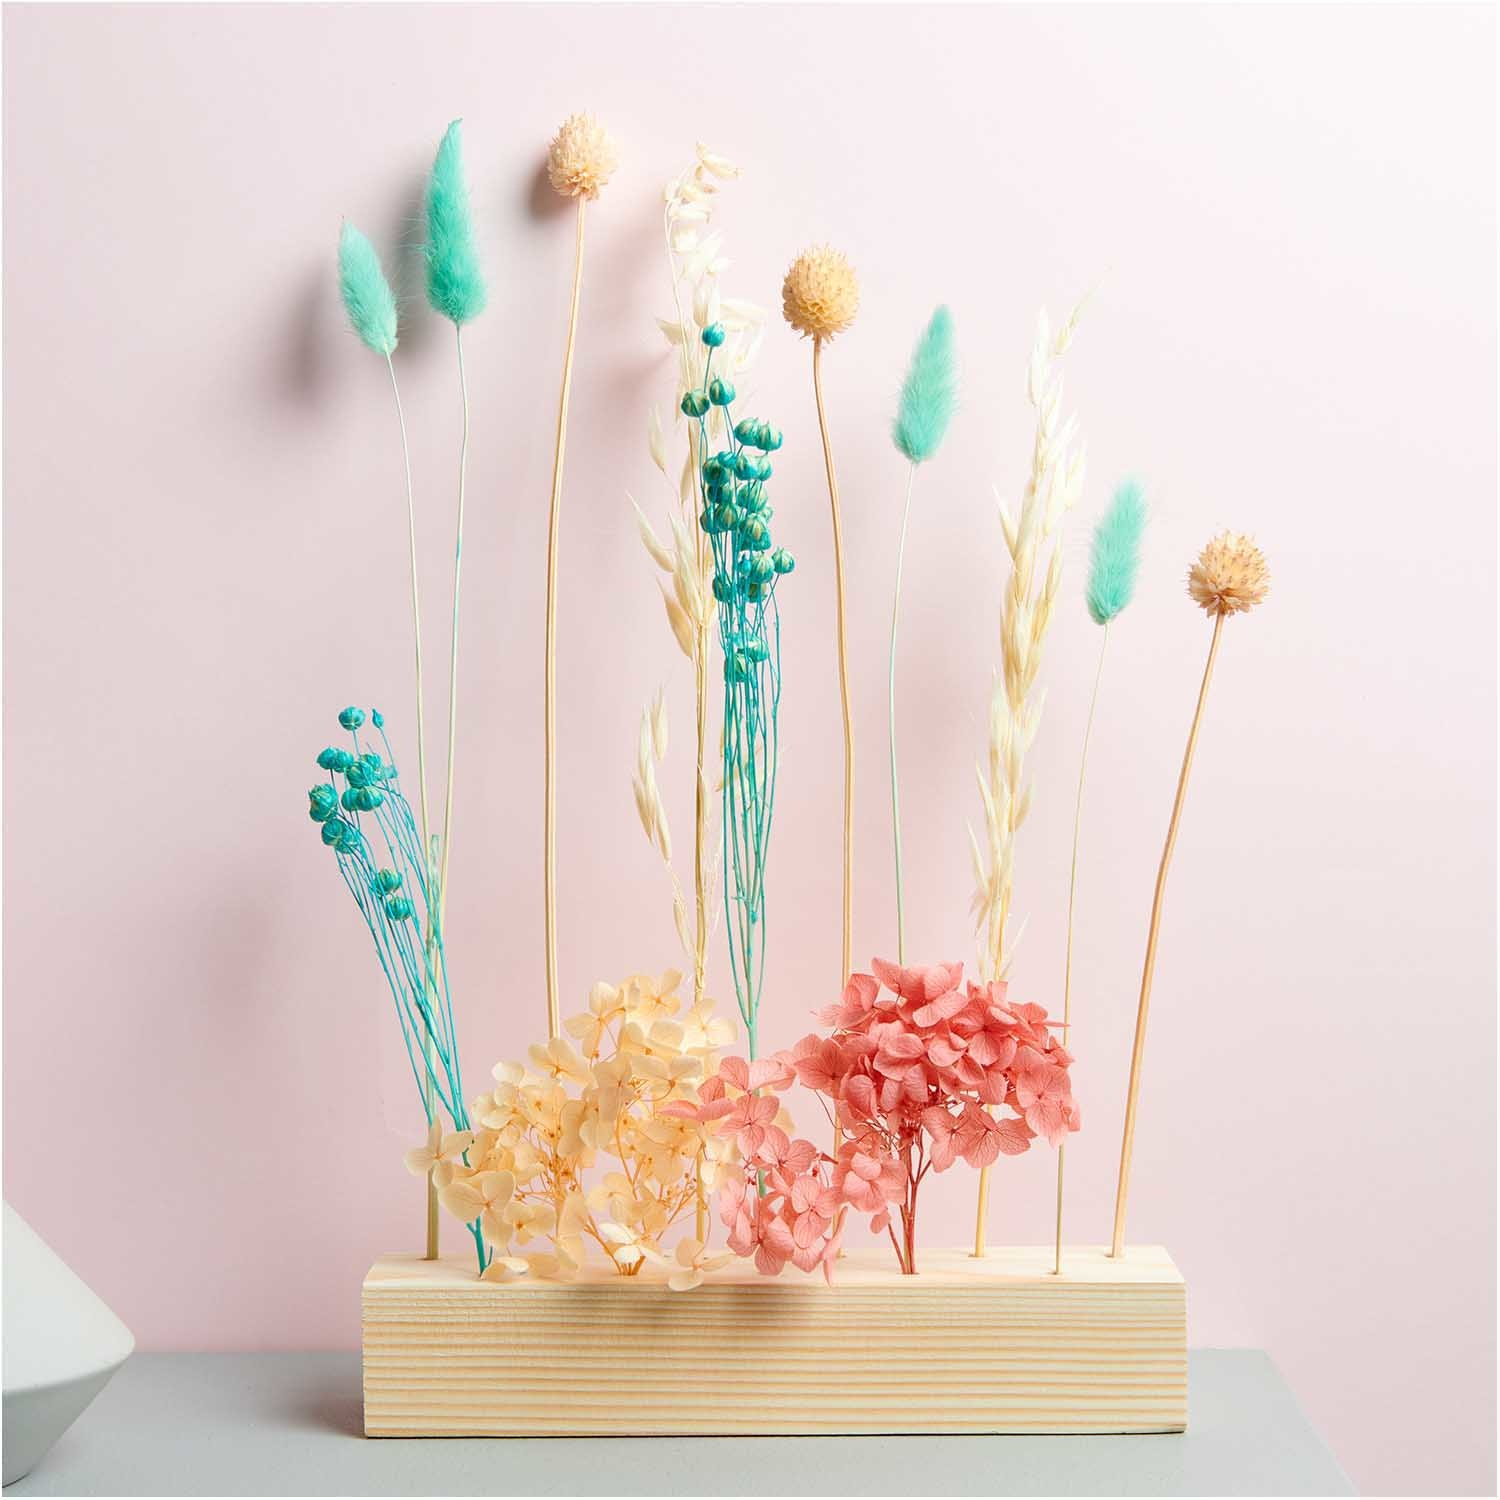 Rico NAY Dried flowers set, pastel turquoise